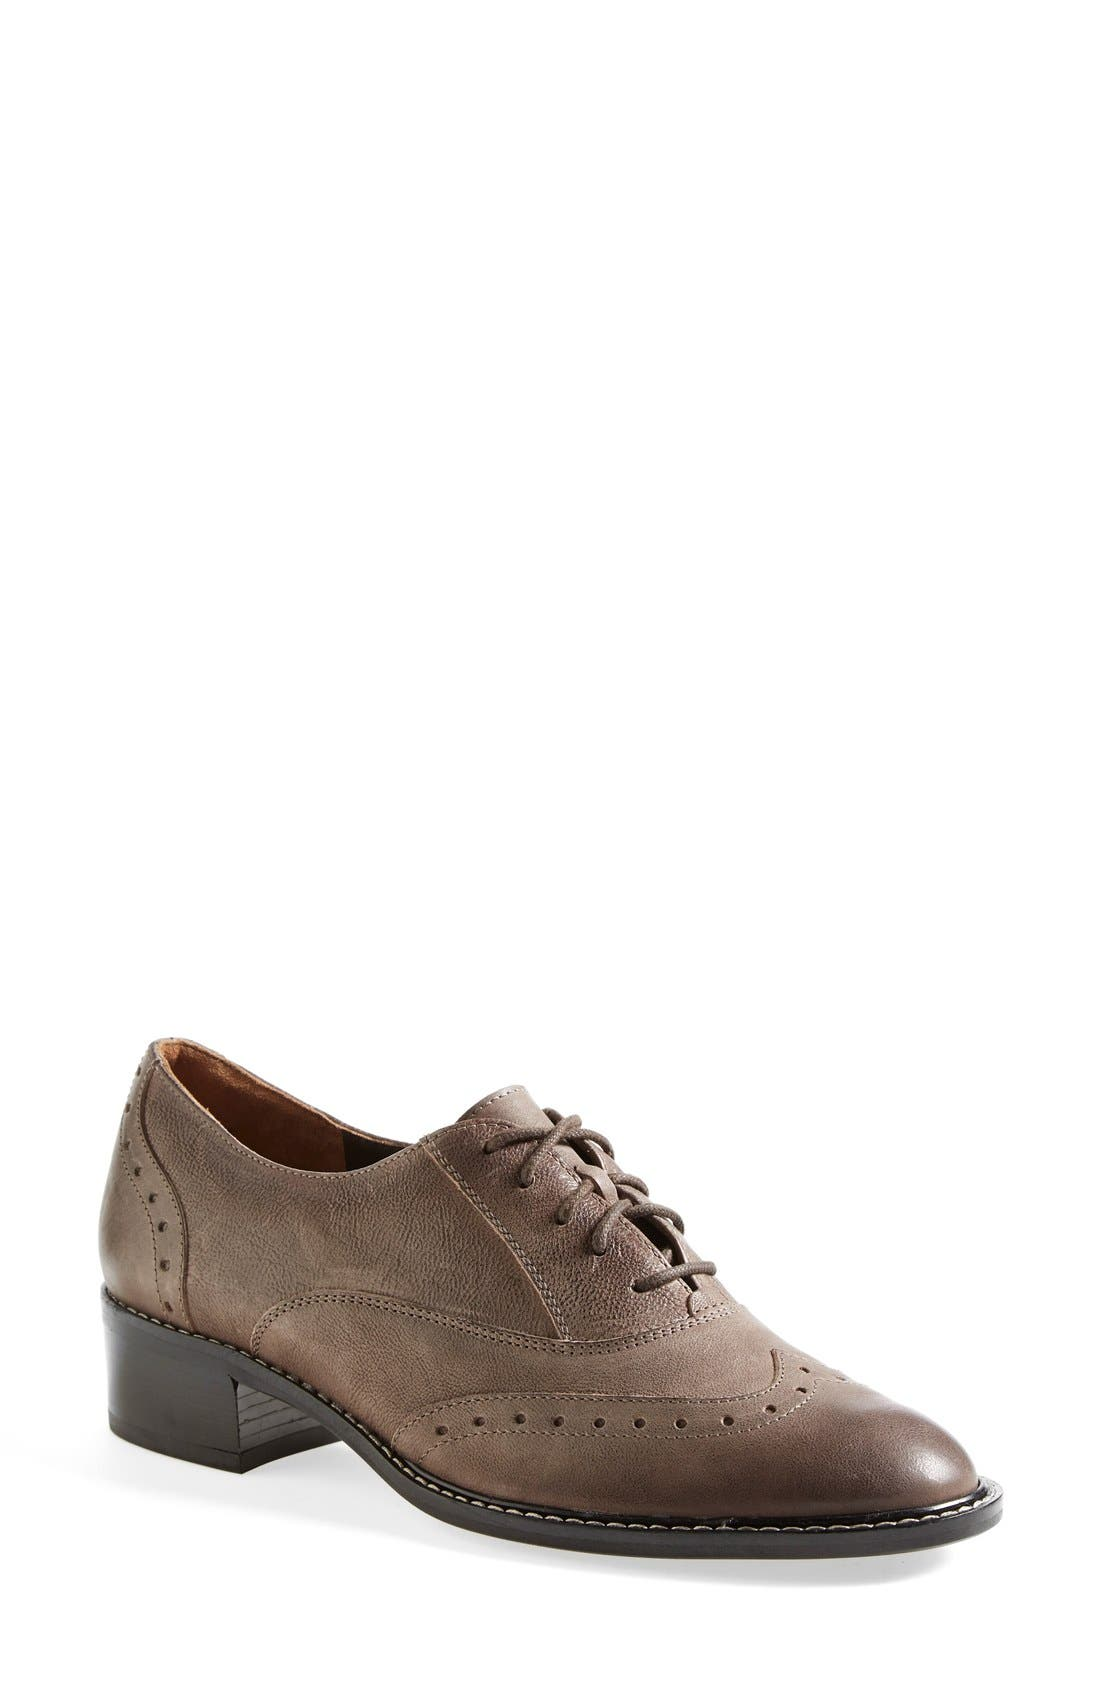 Main Image - Paul Green 'Addly' Wingtip Lace-Up (Women)